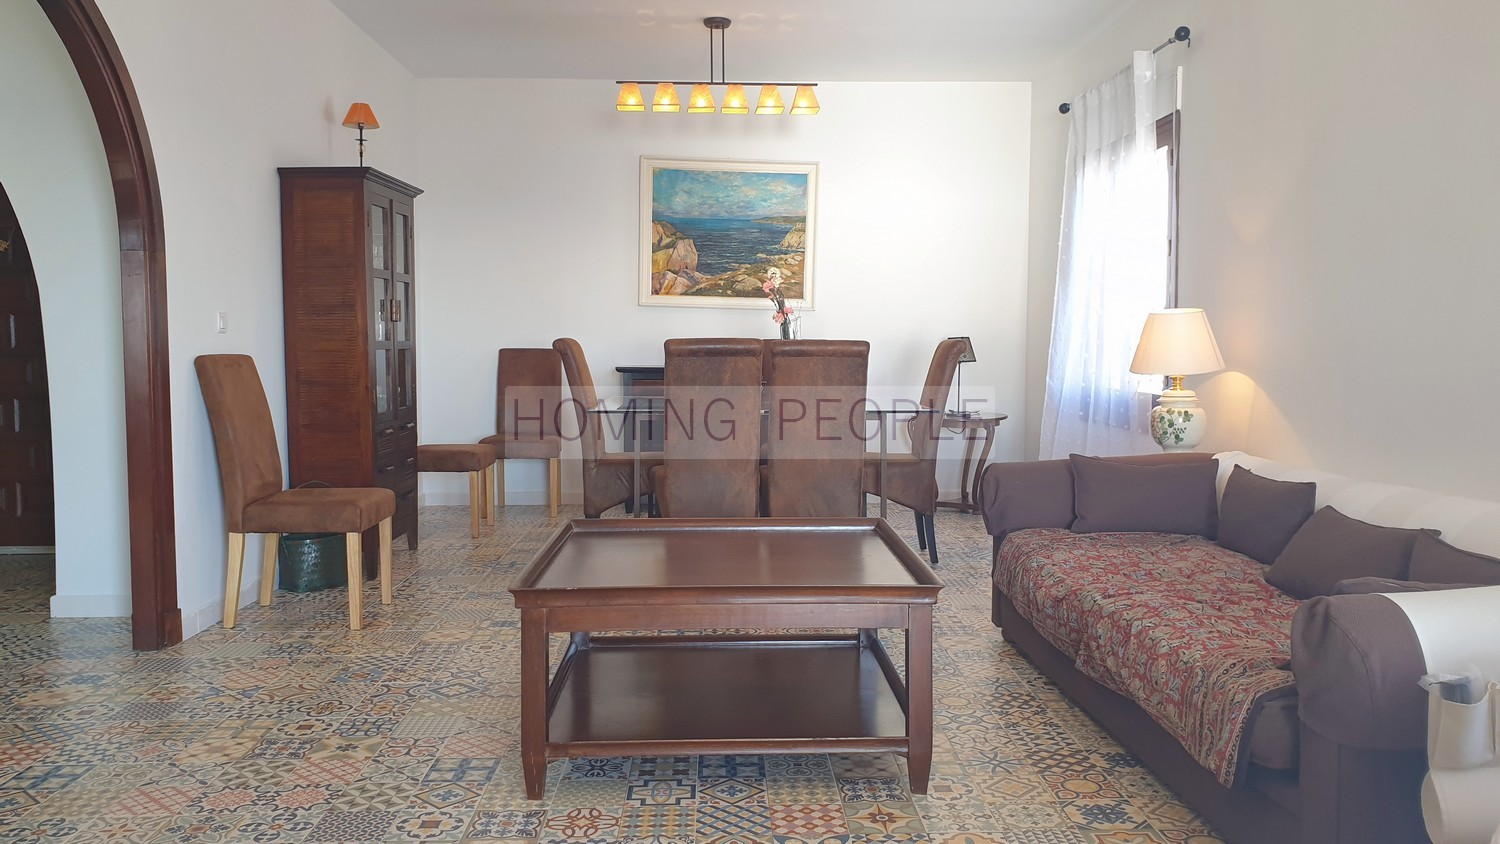 RENTED OUT. Renovated family villa with swimming pool and panoramic sea views